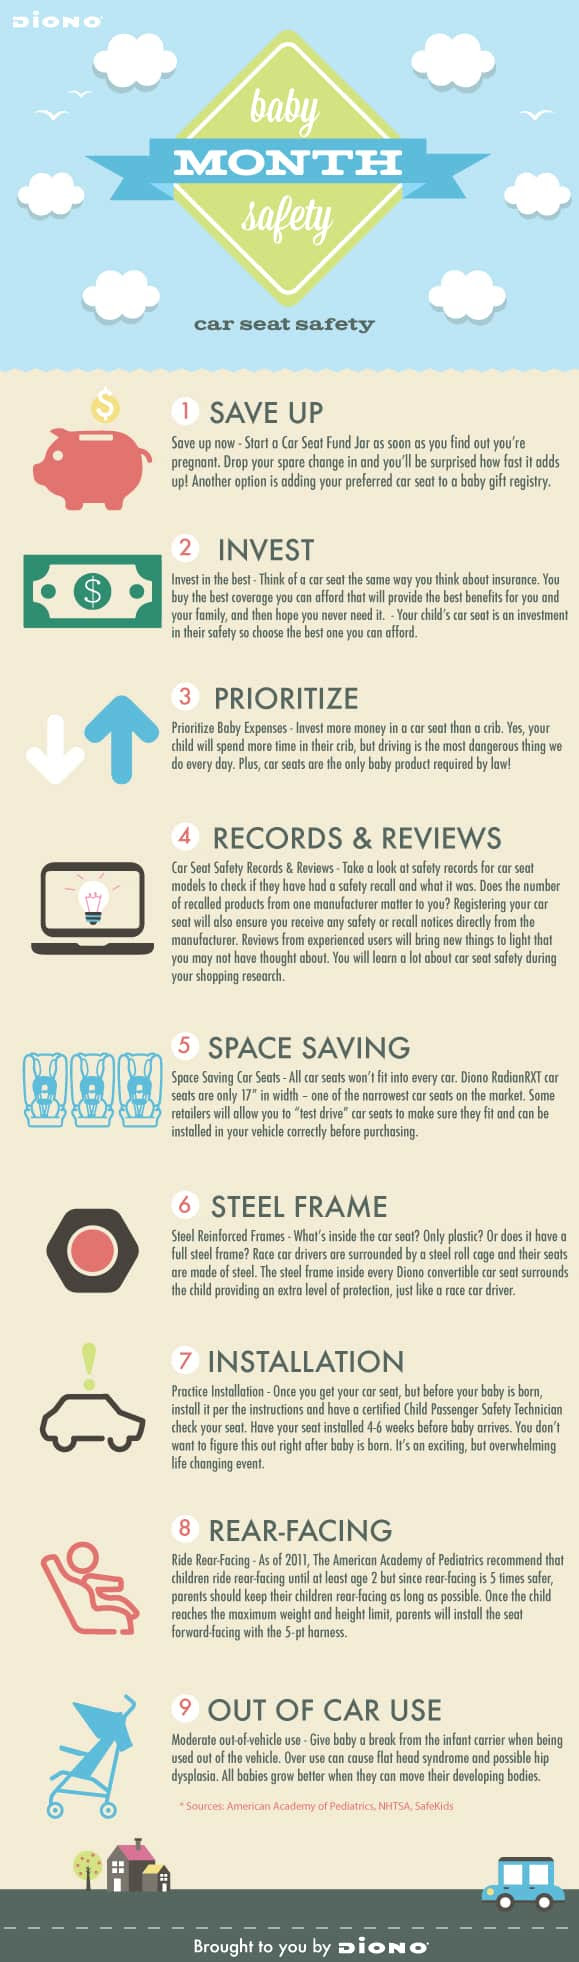 CPS_Infographic_